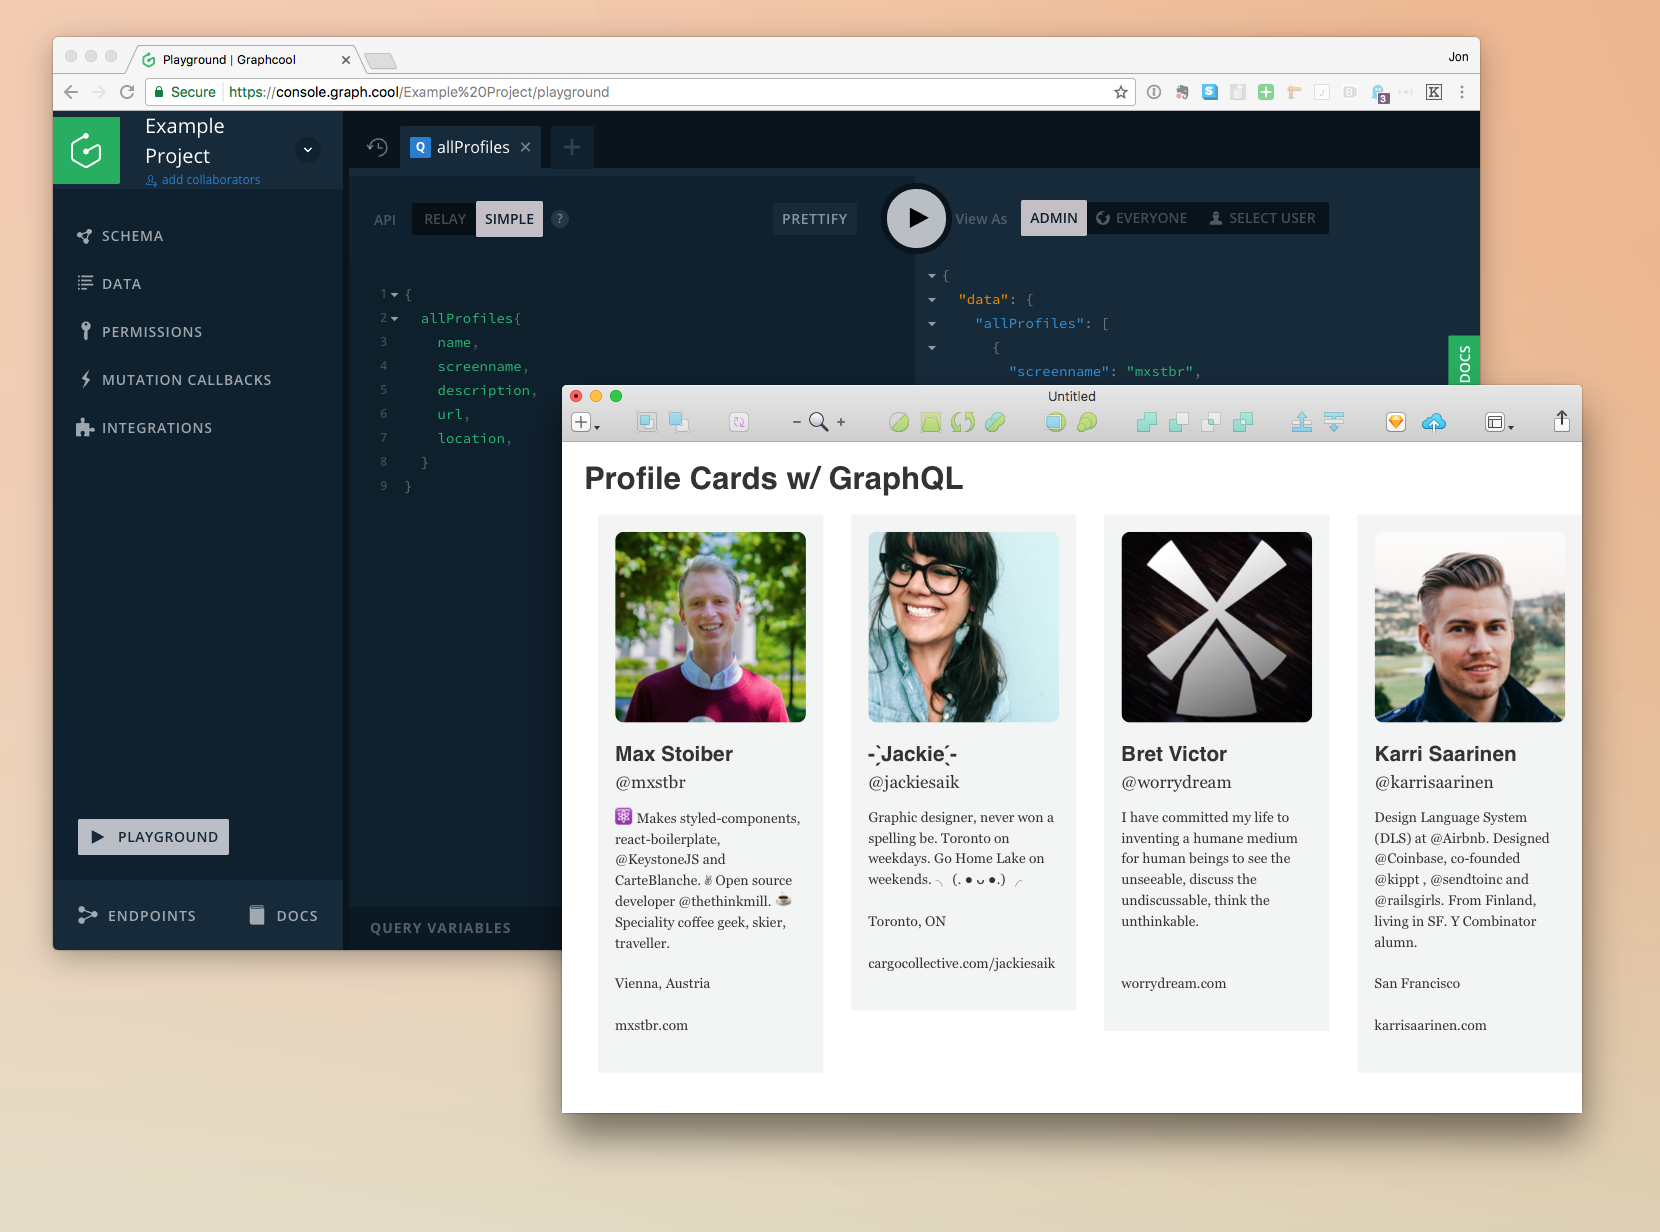 Profile Cards w/ GraphQL